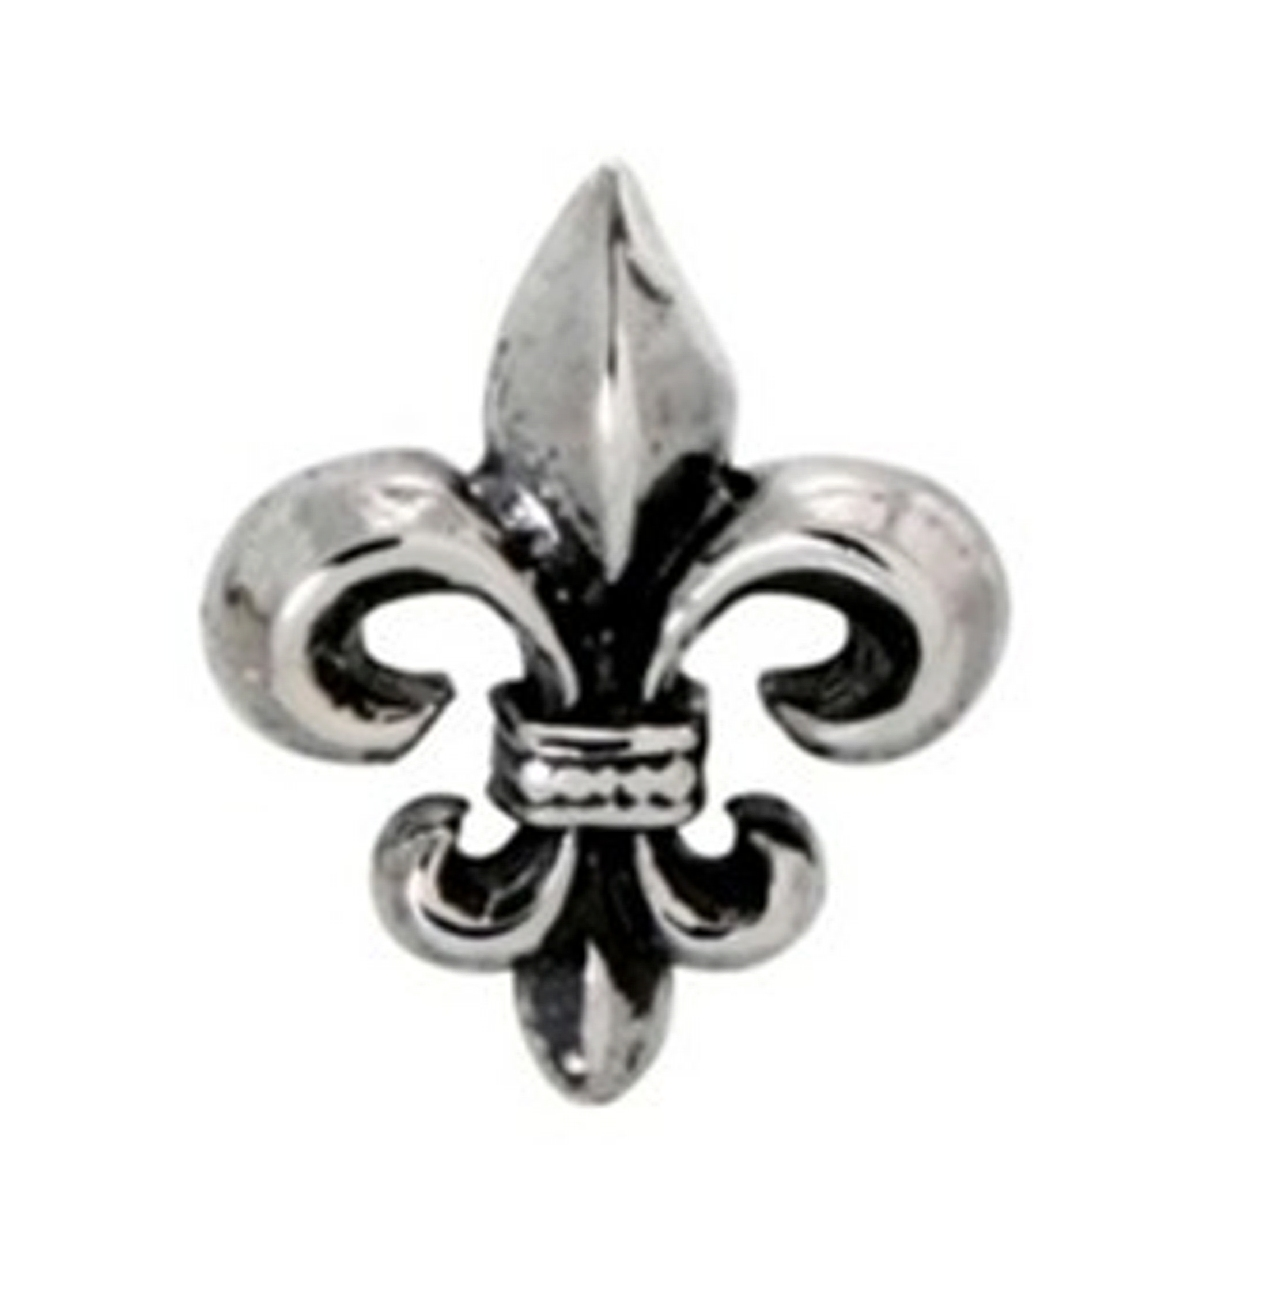 Single Small Fleur De Lis Post Earrings